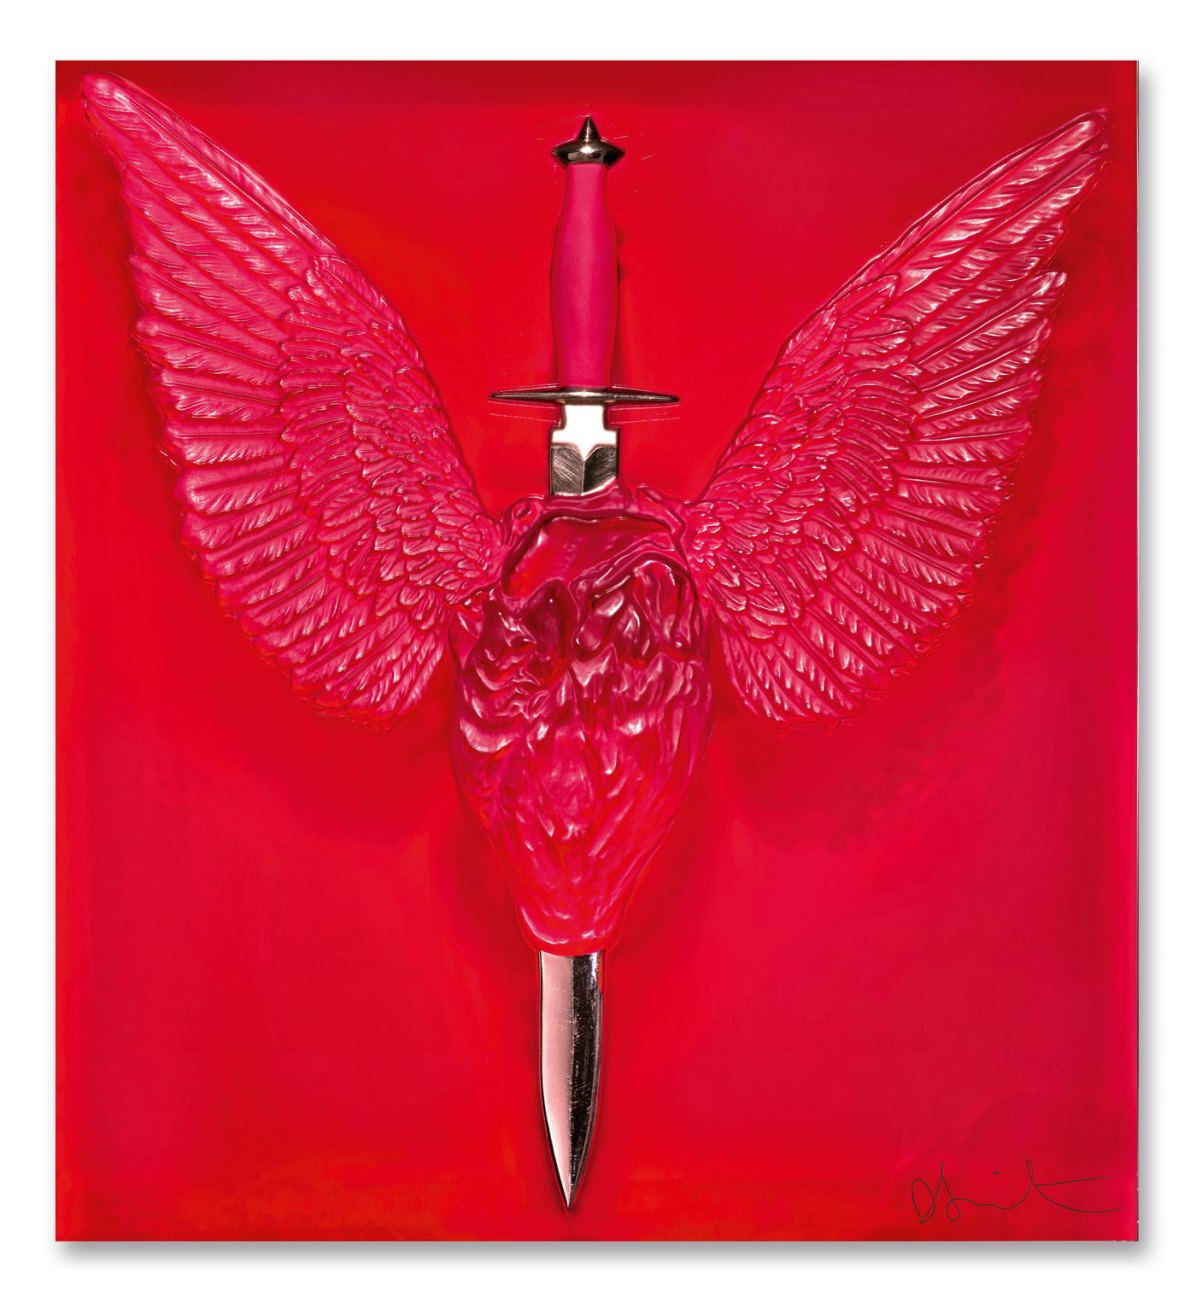 HD-88059211-ETERNAL-PRAYER-Red-and-Platinum-Photo-François-Fernandez-©-Damien-Hirst-Science-Ltd-and-Lalique